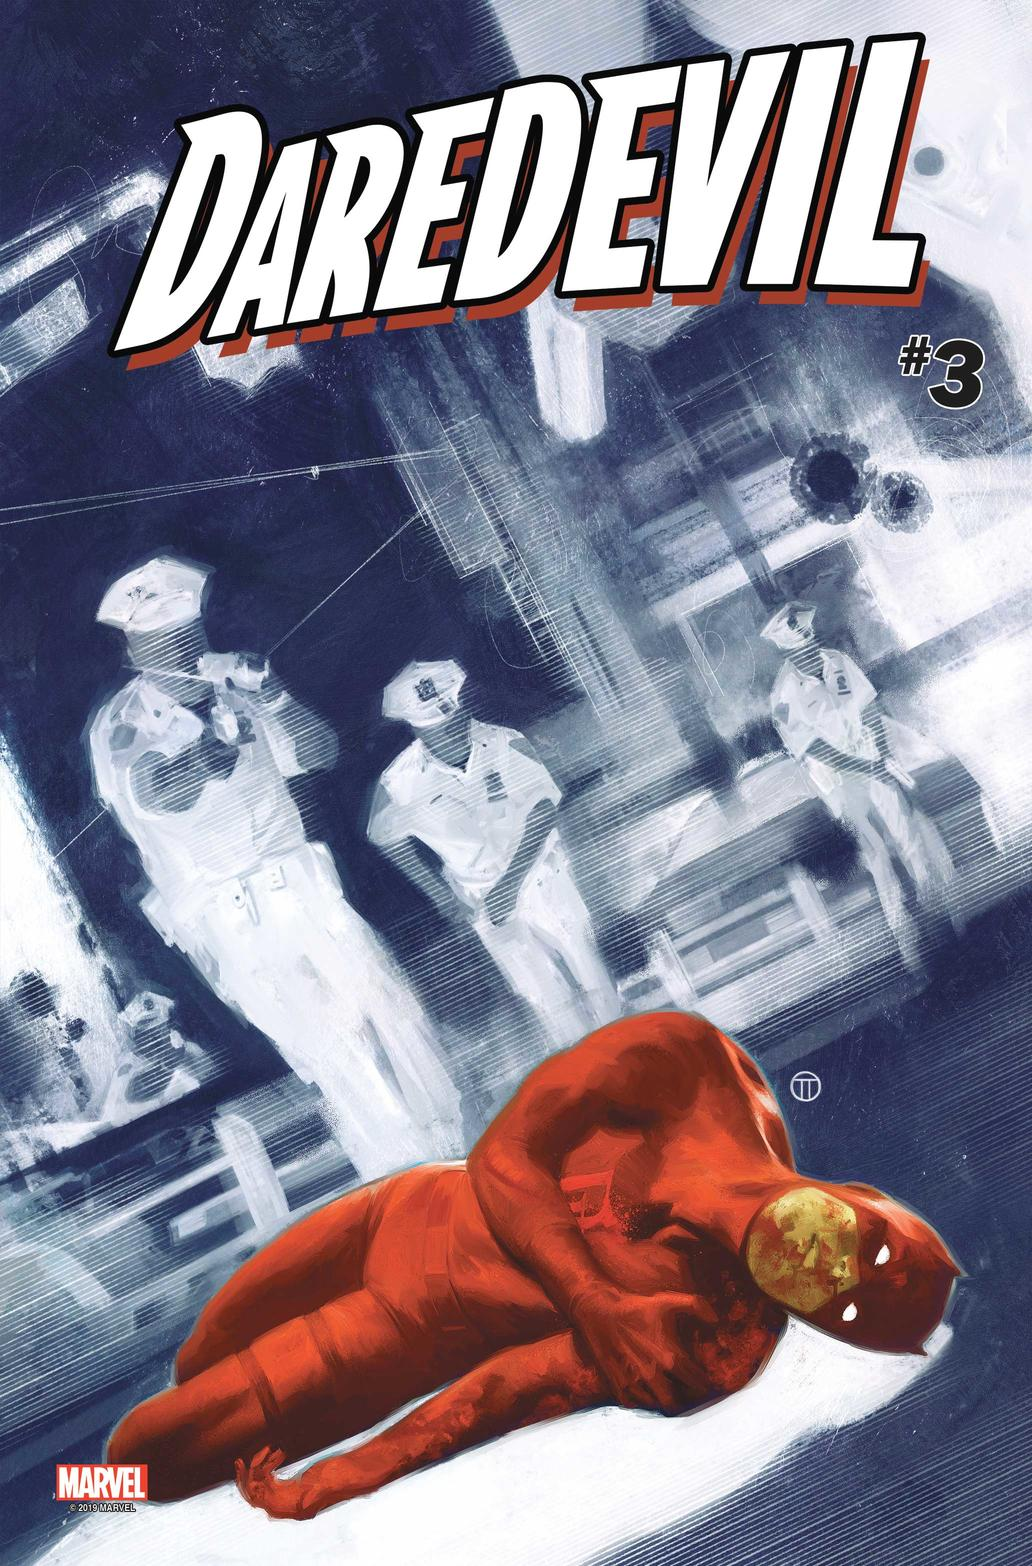 Cover of Daredevil #3